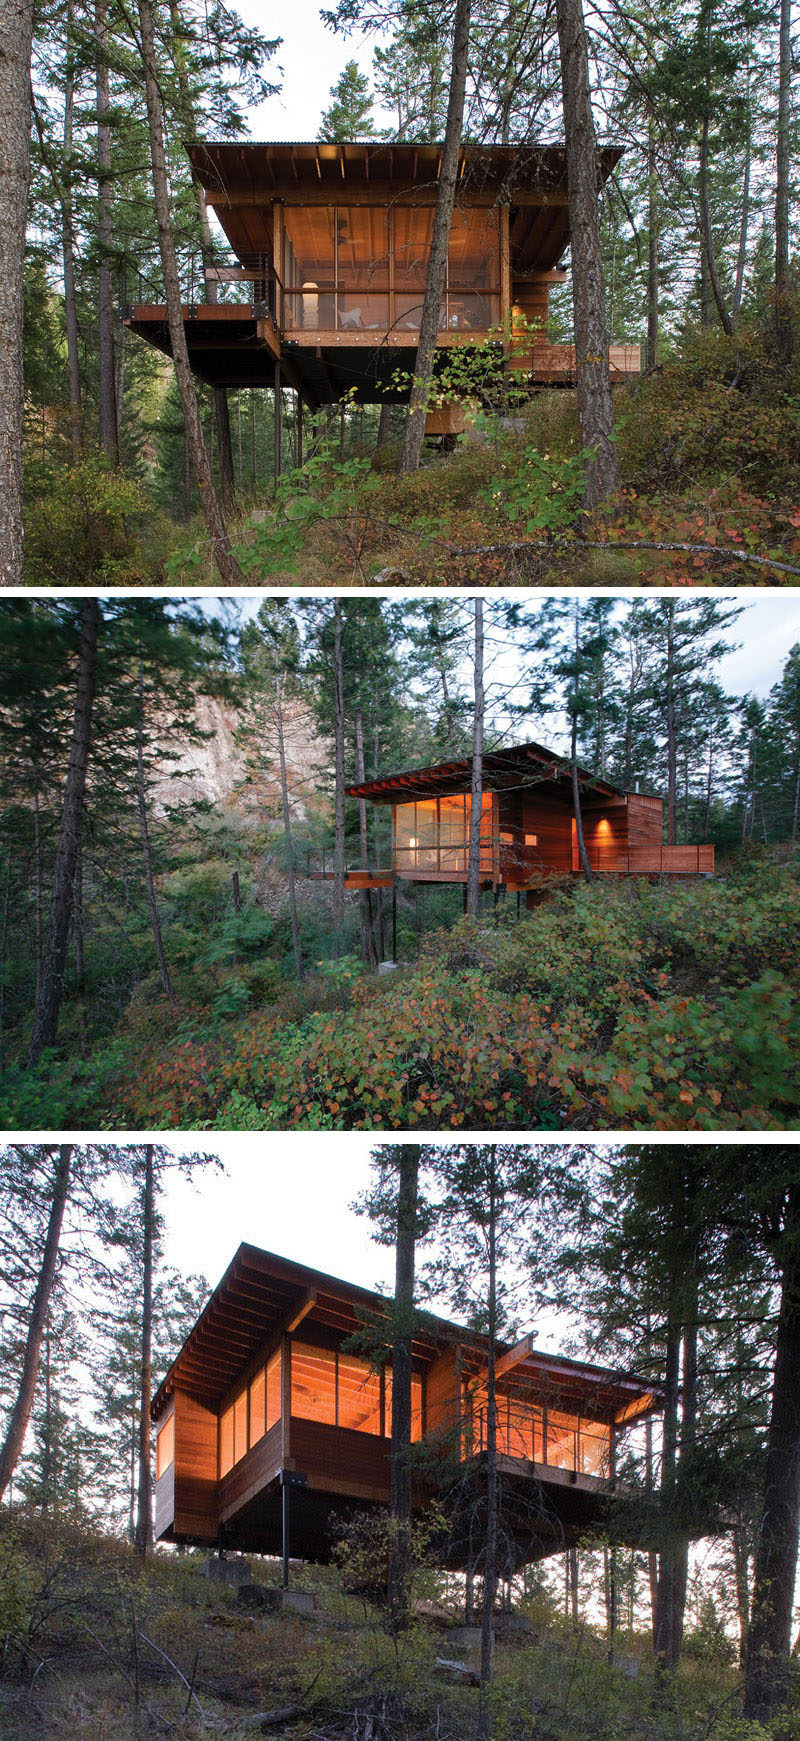 18 Modern House In The Forest // This forest house is lifted right up into the trees to provide better views of the surrounding vegetation. #ModernHouse #ModernArchitecture #HouseInForest #HouseDesign